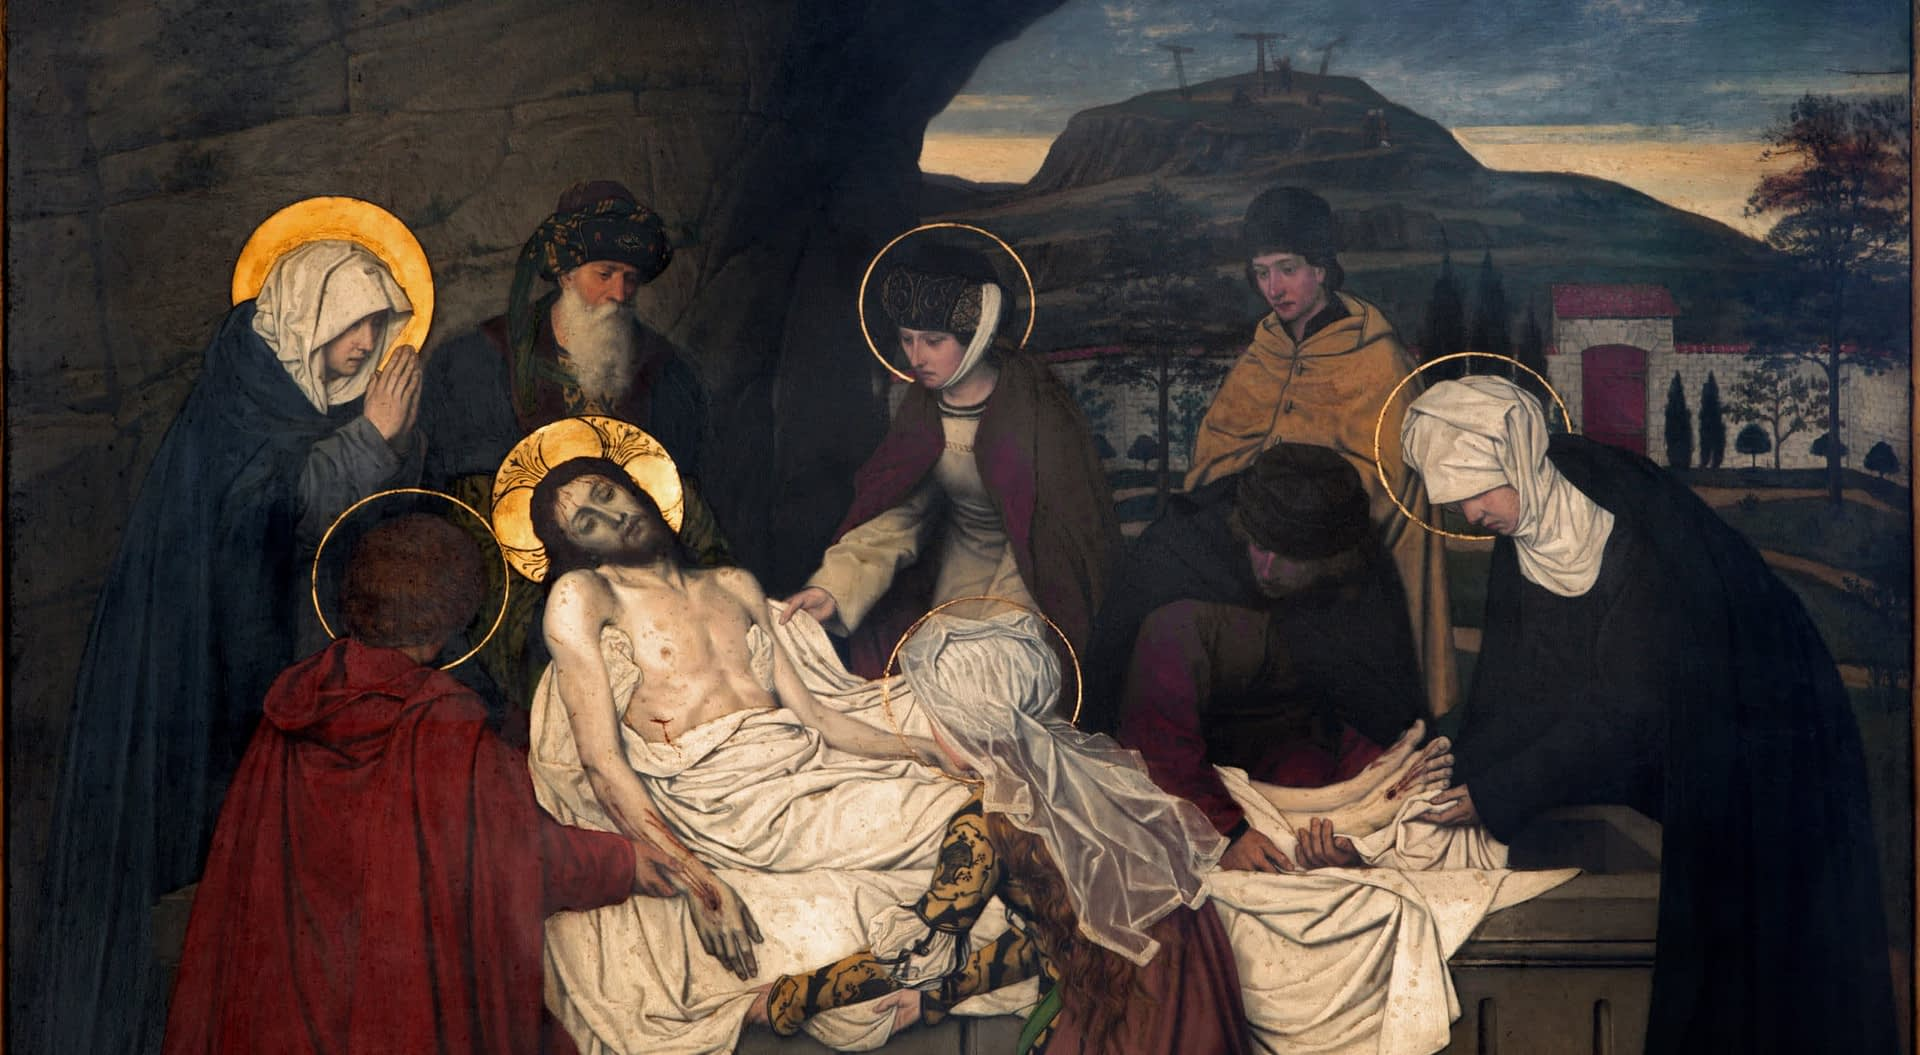 ANTWERP, BELGIUM Fresco - Burial of Jesus by Josef Janssens from years 1903 - 1910 in the cathedral of Our Lady